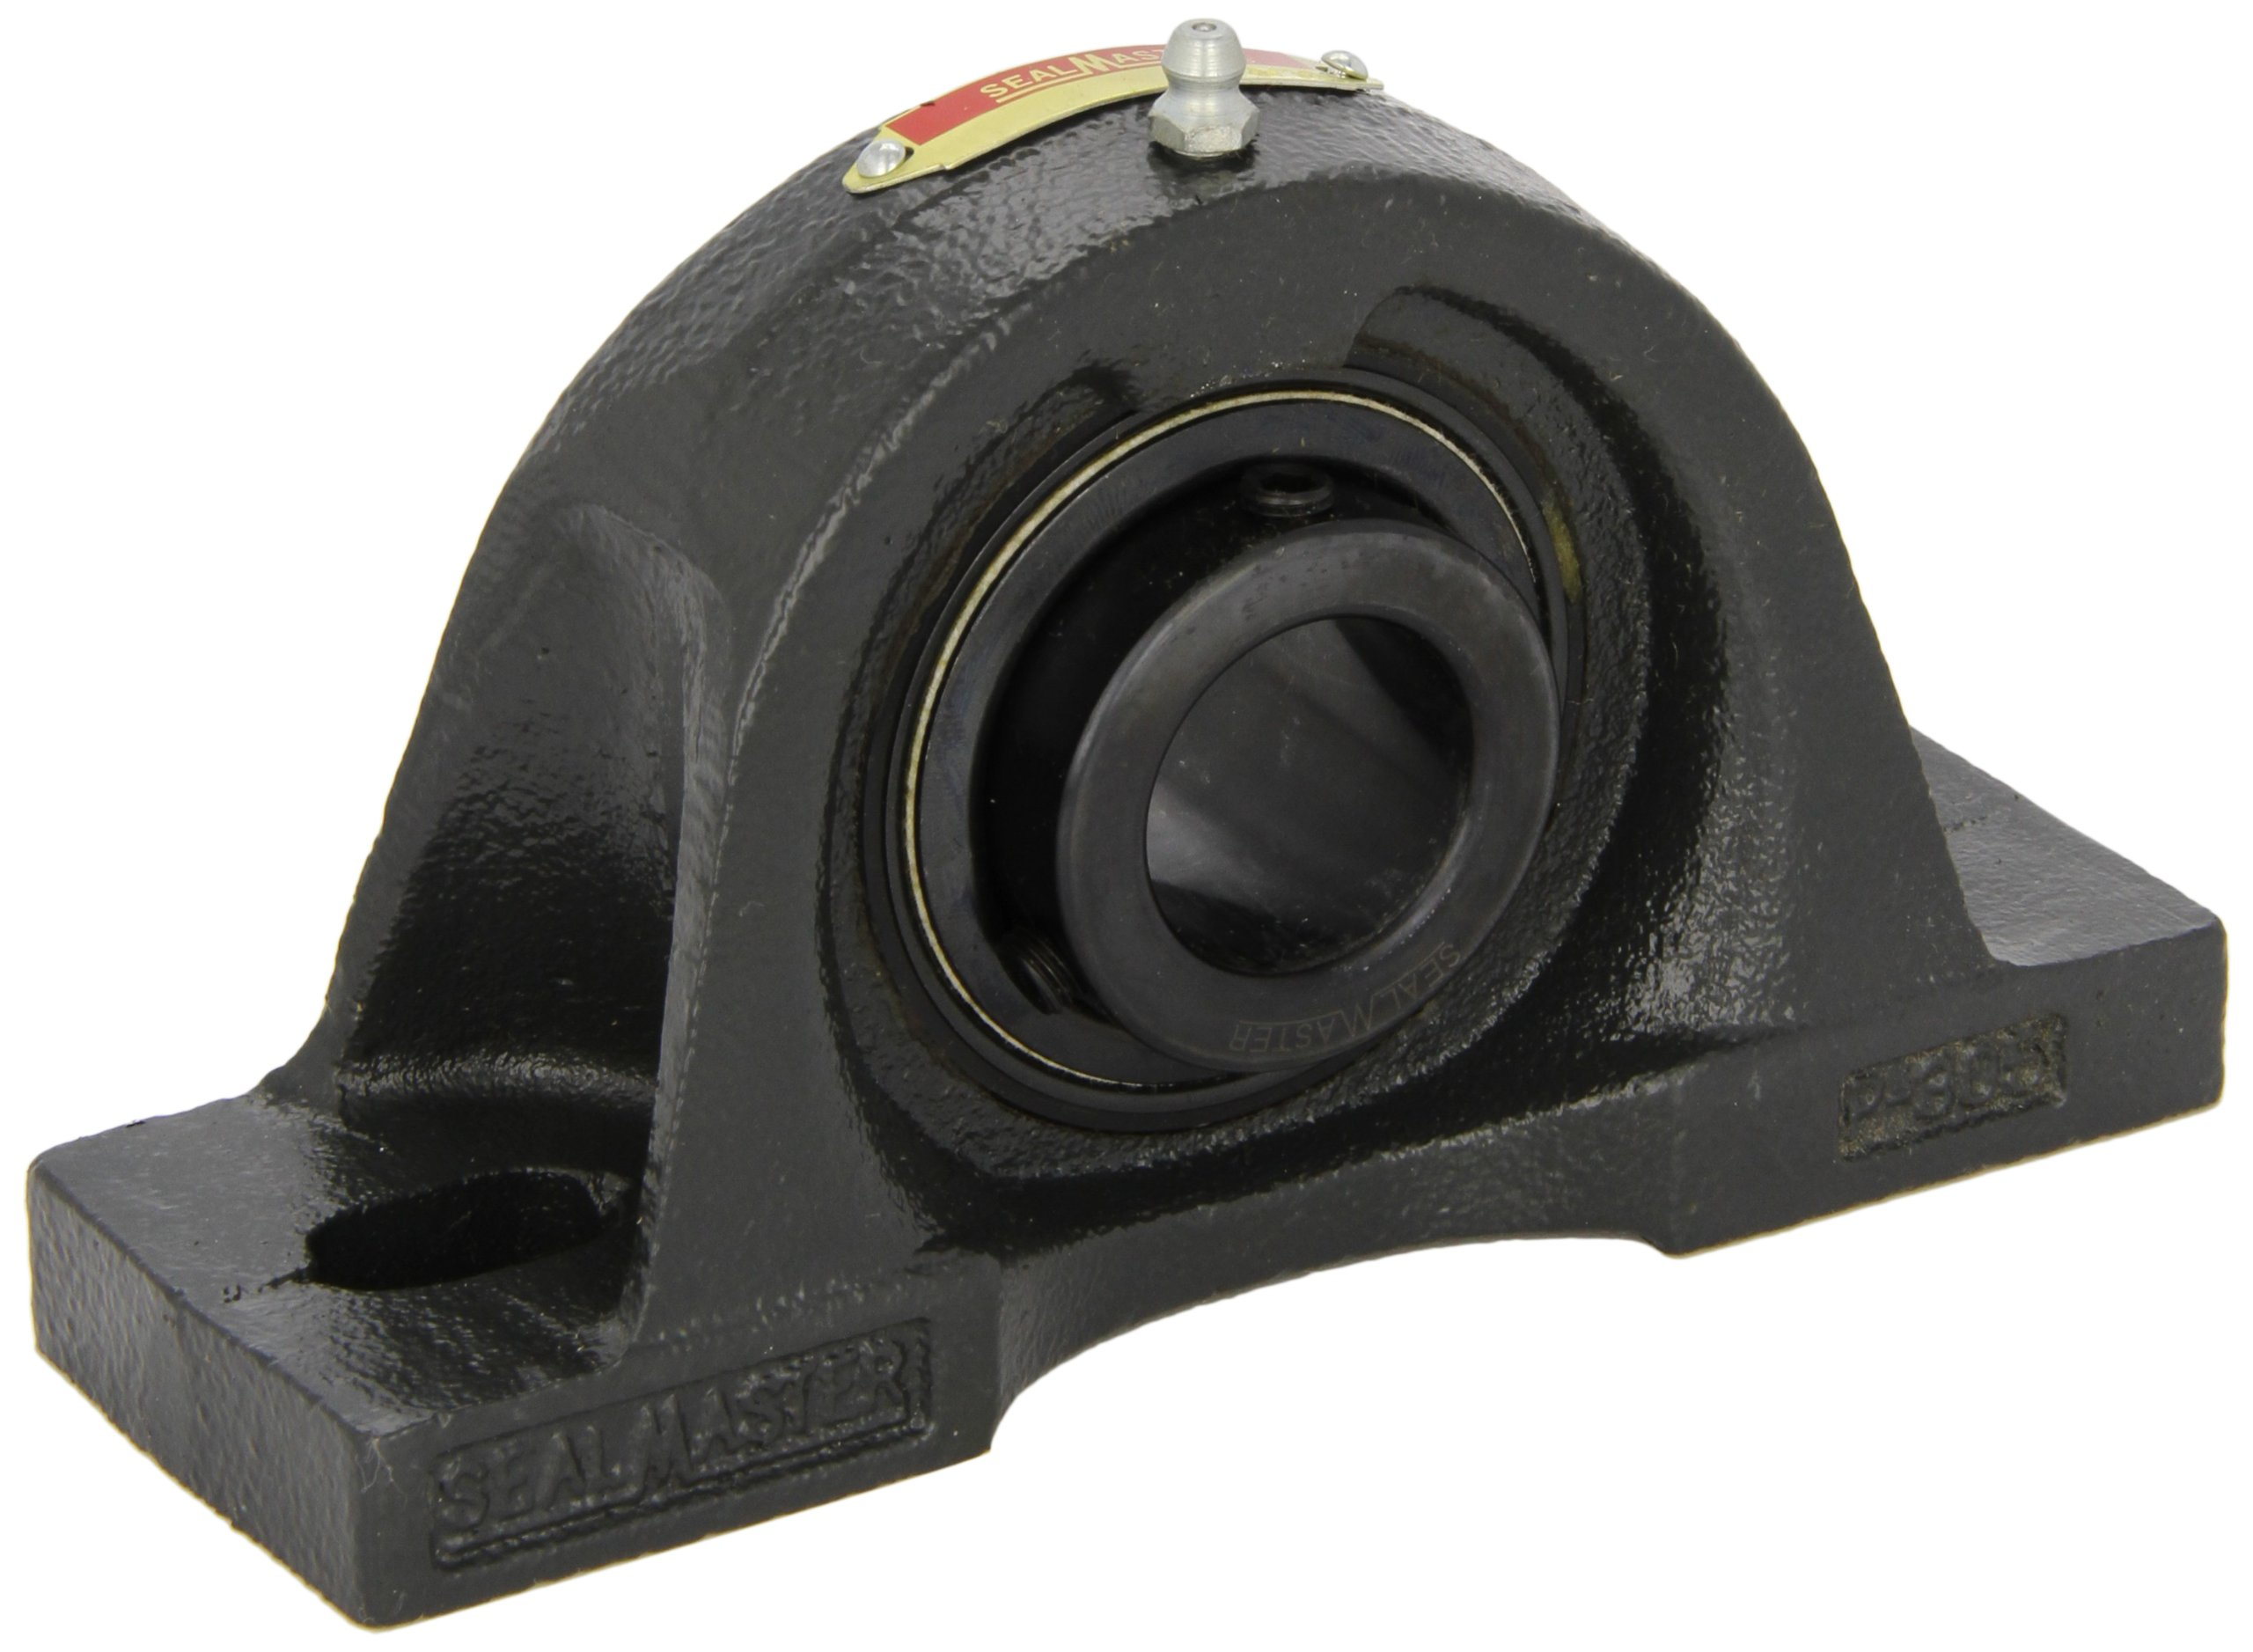 Sealmaster MP-48 Pillow Block Ball Bearing, Non-Expansion Type, Medium-Duty, Regreasable, Setscrew Locking Collar, Felt Seals, Cast Iron Housing, 3'' Bore, 3-1/2'' Base to Center Height, 9'' Bolt Hole Spacing Width, ±2 degrees Misalignment Angle